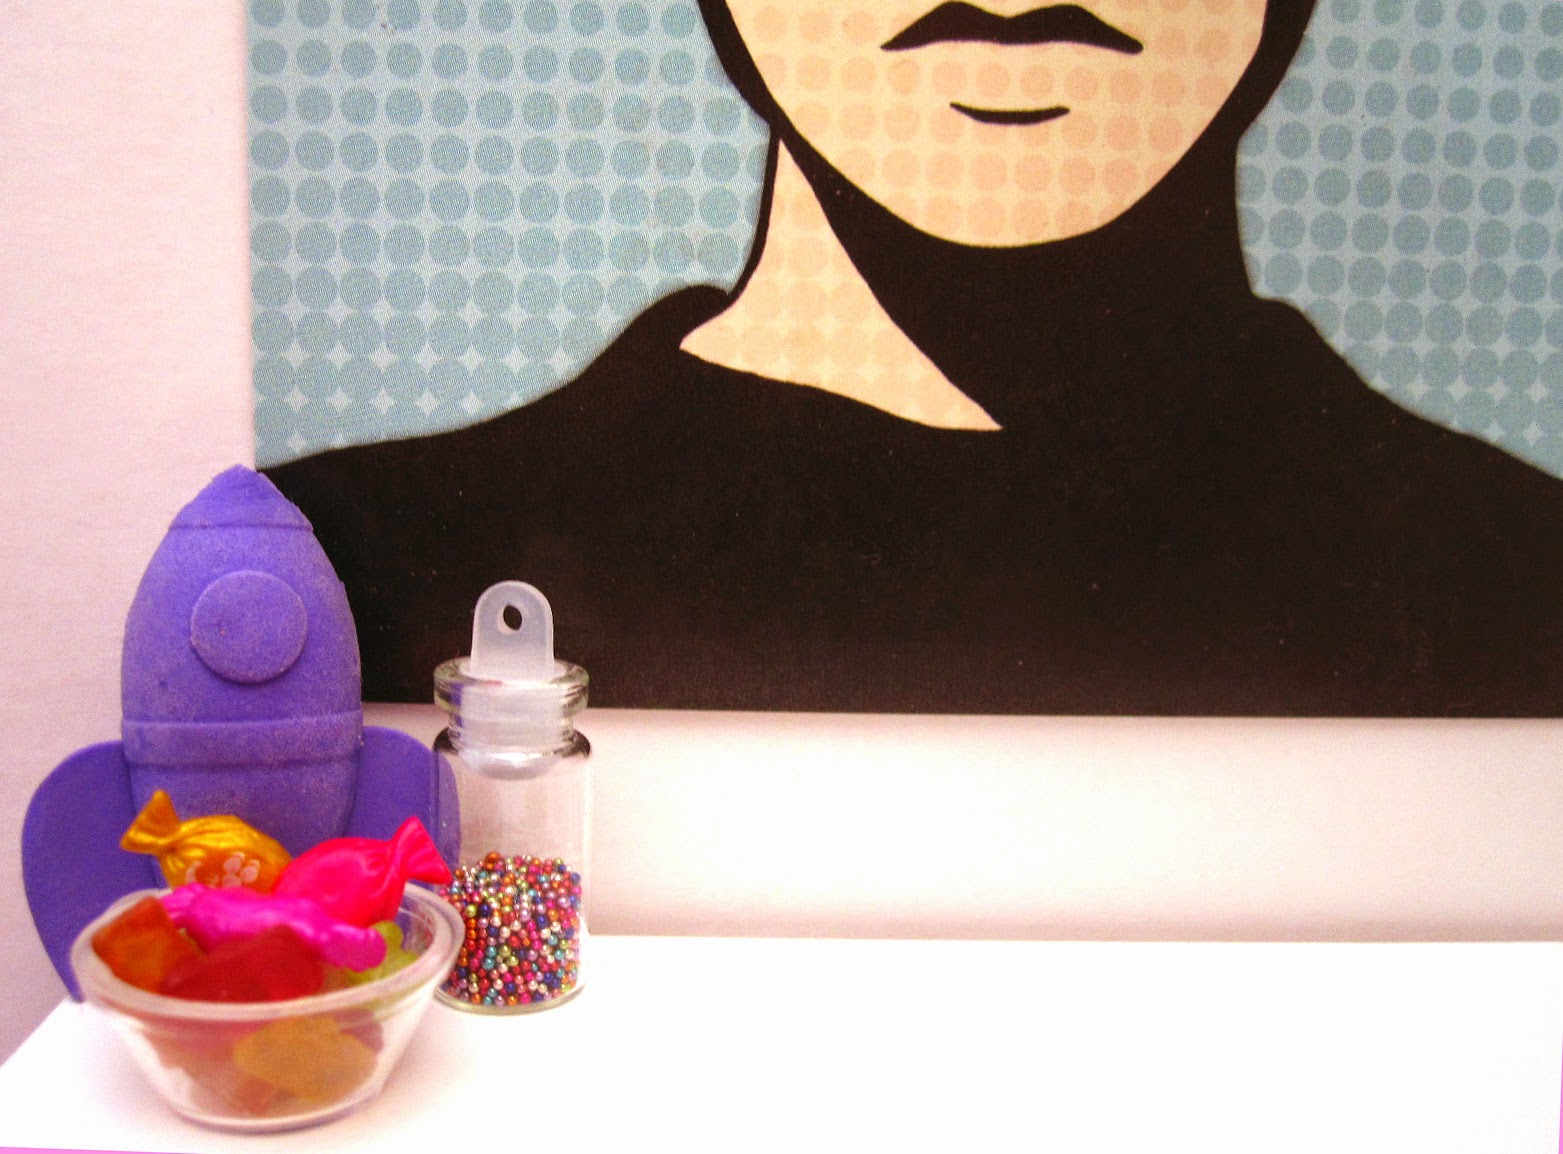 Modern dolls house miniature scene of a purple rocket, bowl of colourful sweets and jar of tiny beads in front of a colourful poster.